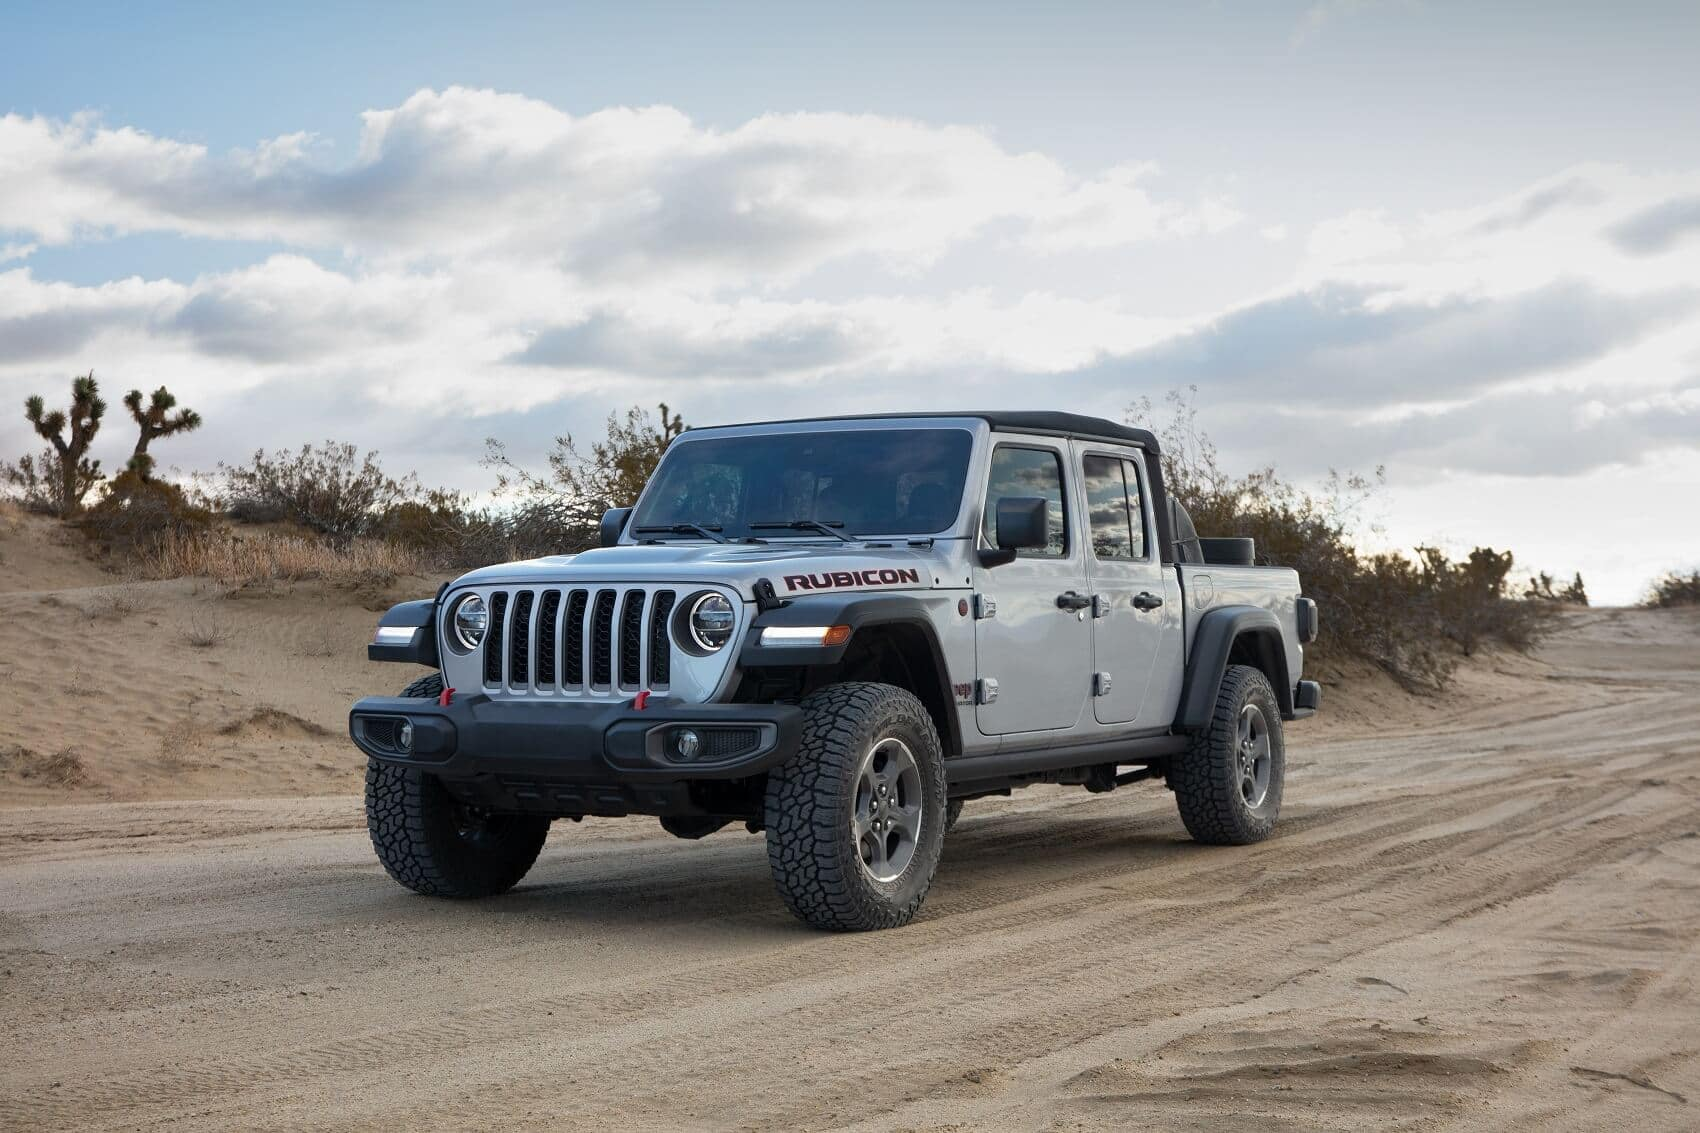 2021 Jeep Gladiator: Capabilities